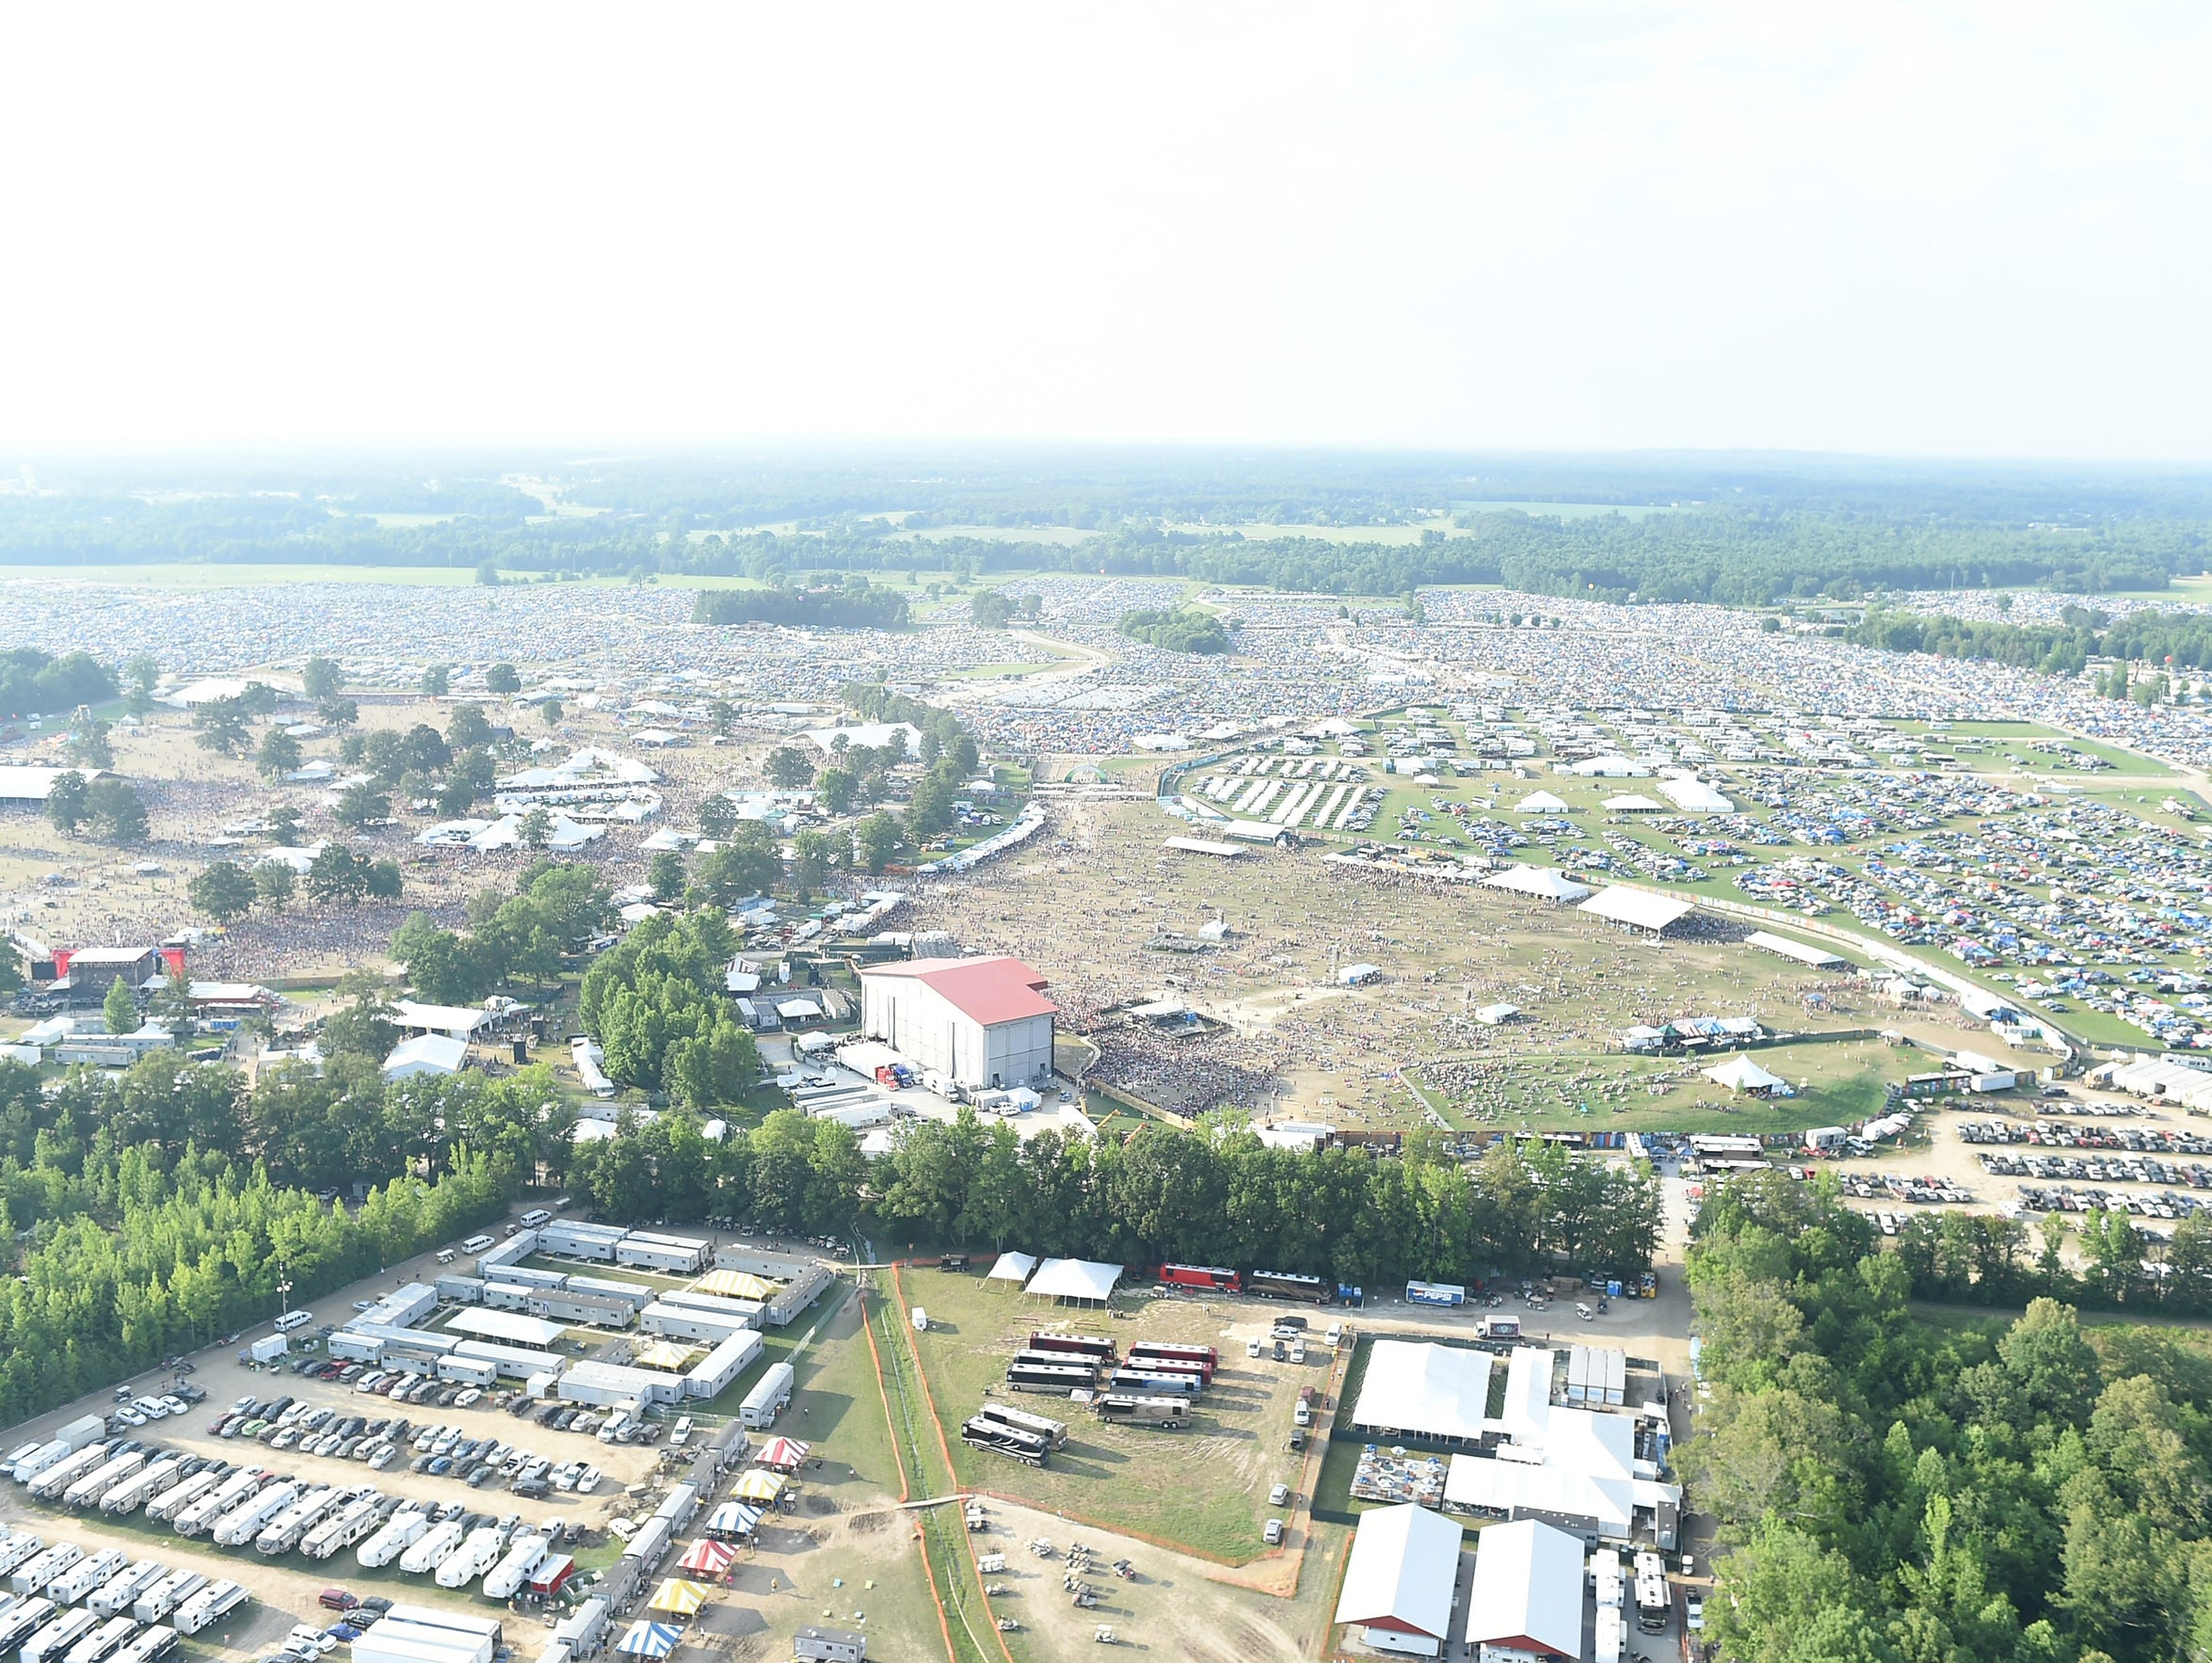 Aerial view of the 2014 Bonnaroo Music & Arts Festival